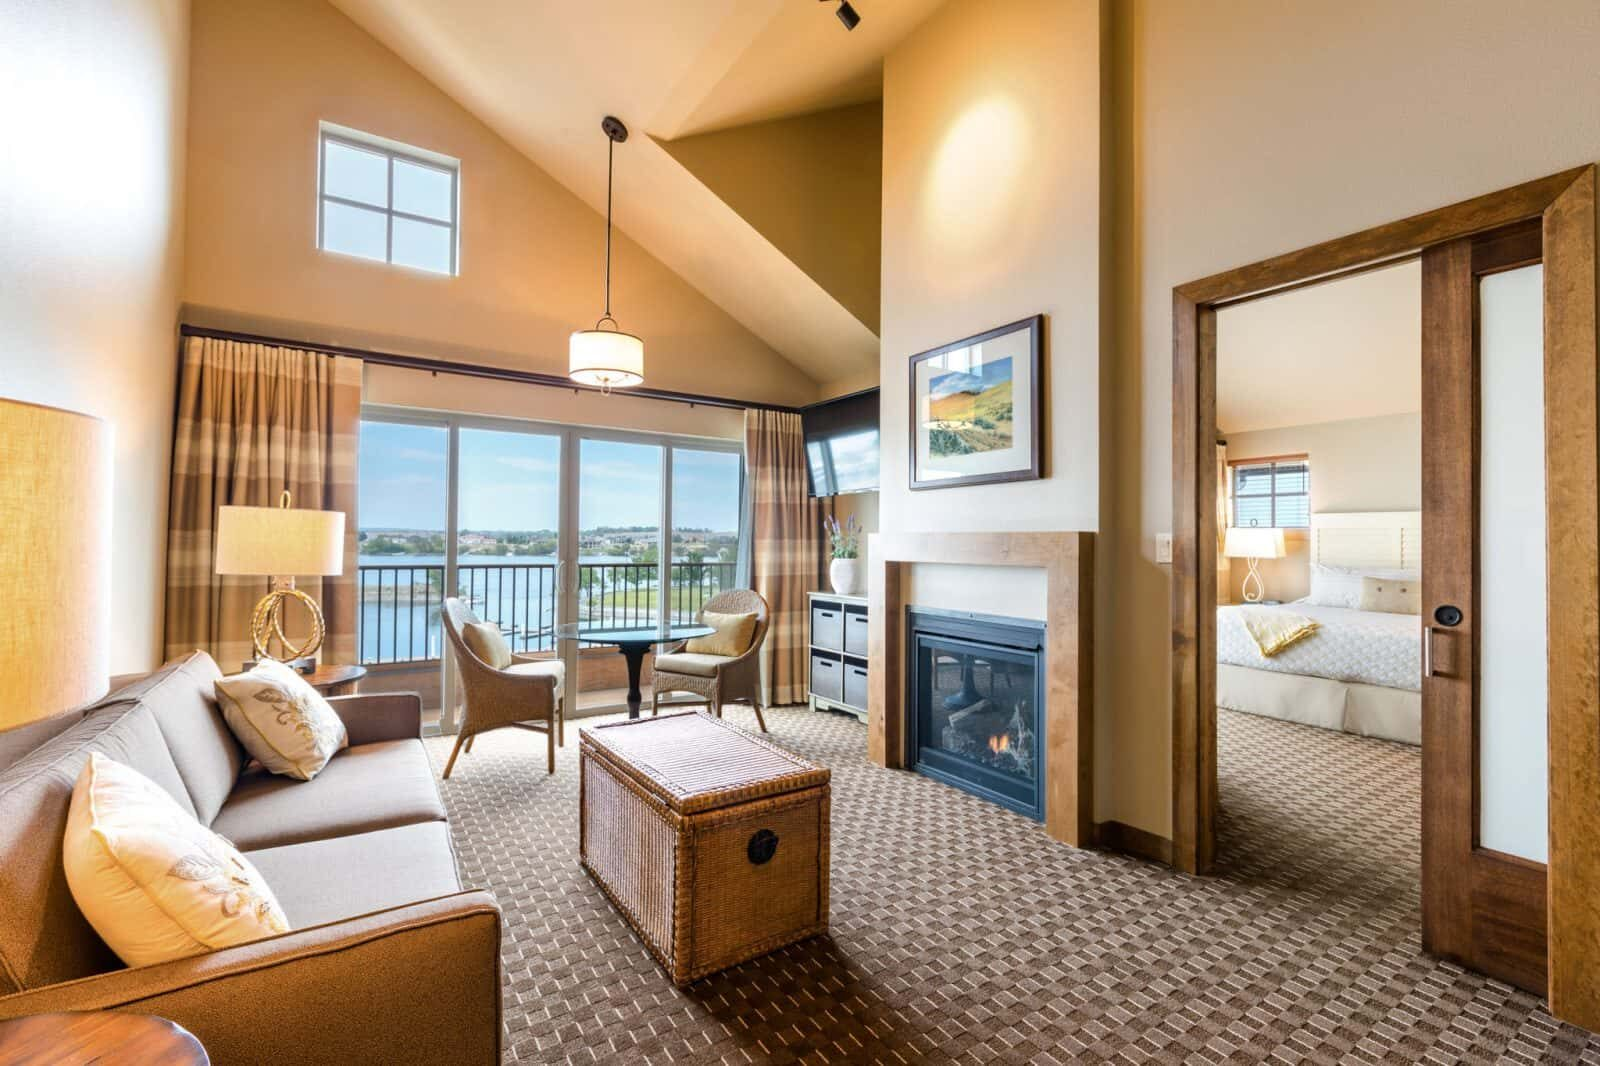 Lodge at Columbia Point: riverfront lodging in Richland, Washington